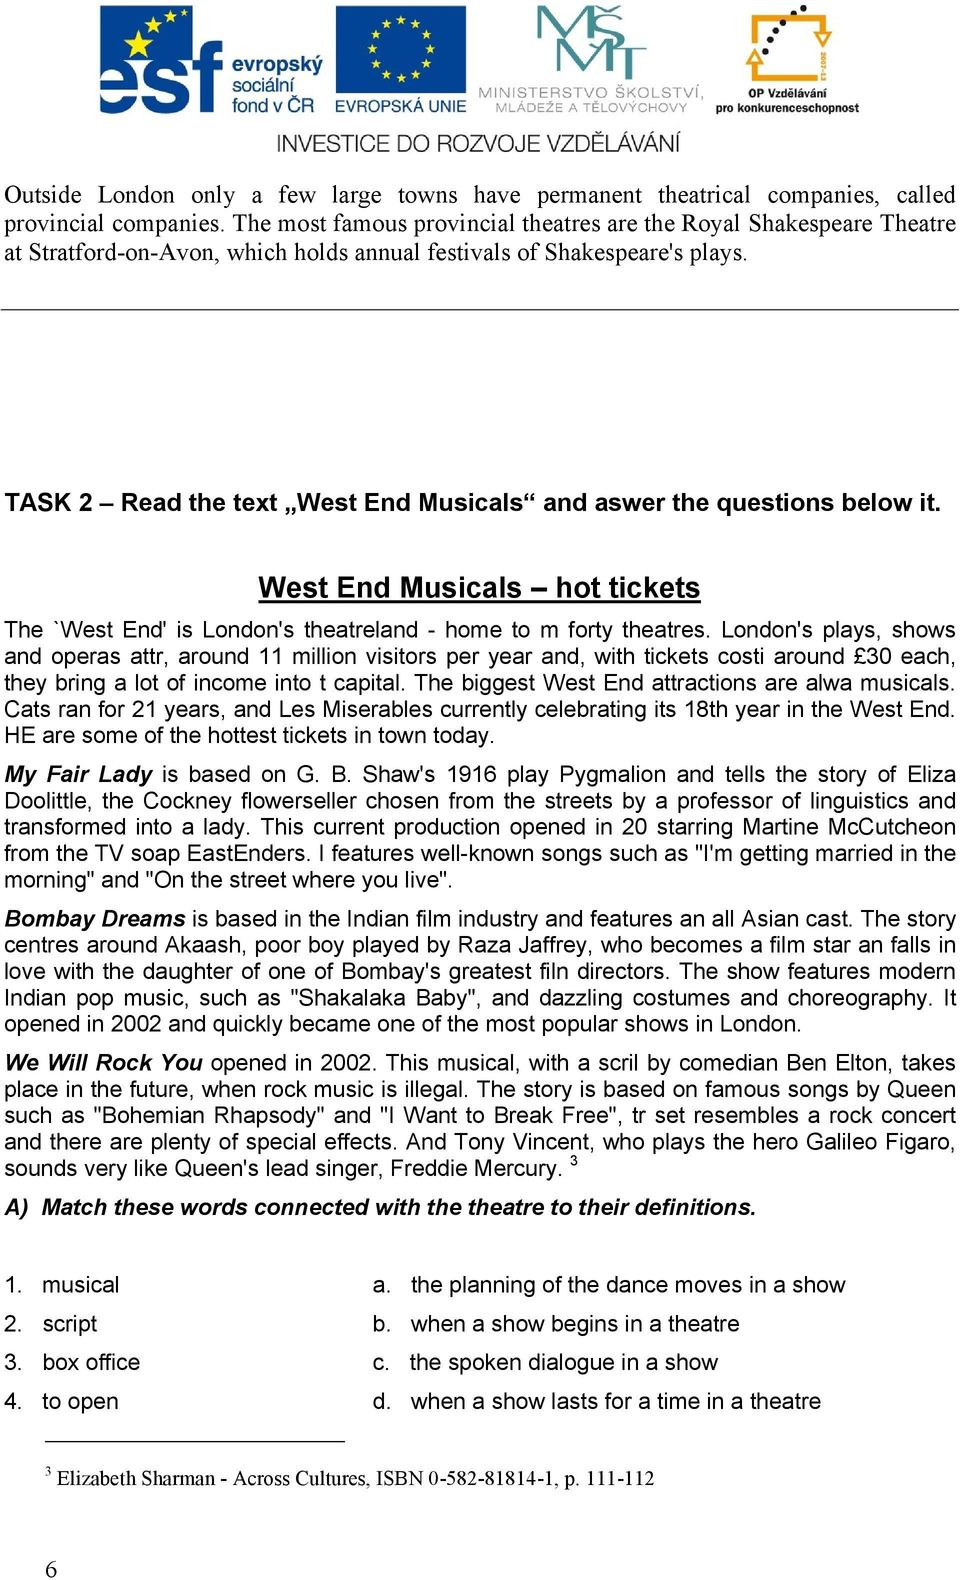 TASK 2 Read the text West End Musicals and aswer the questions below it. West End Musicals hot tickets The `West End' is London's theatreland - home to m forty theatres.